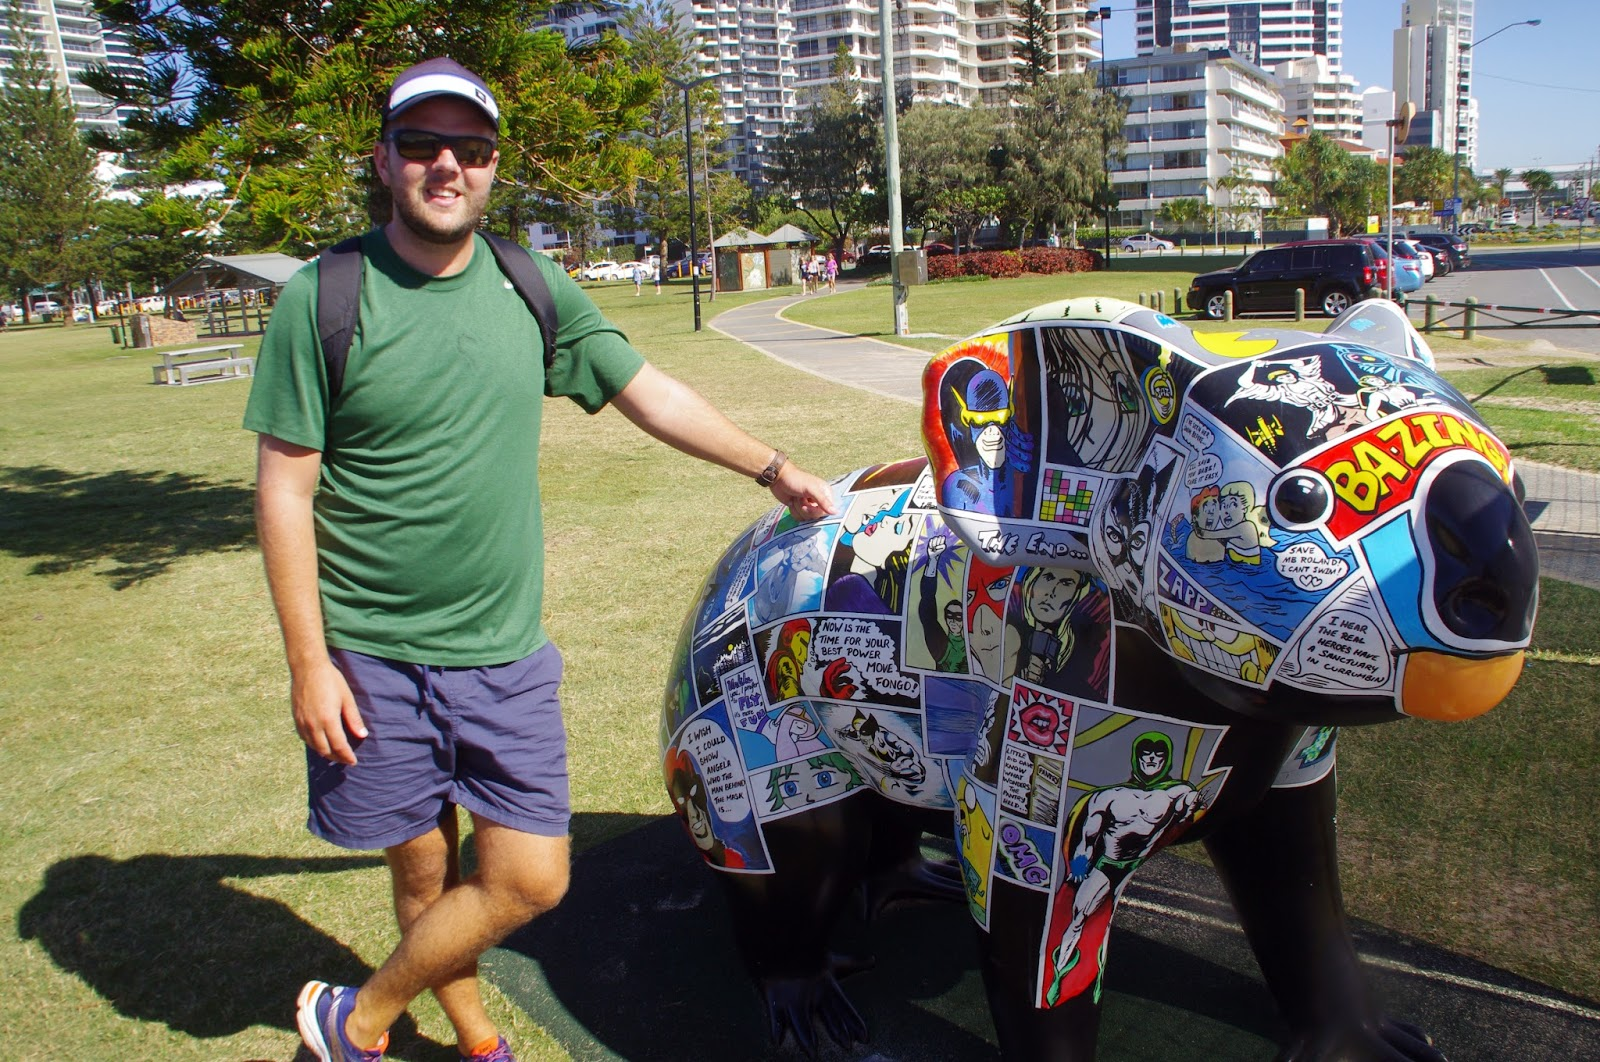 Broadbeach Walkway Guy with Koala Statue